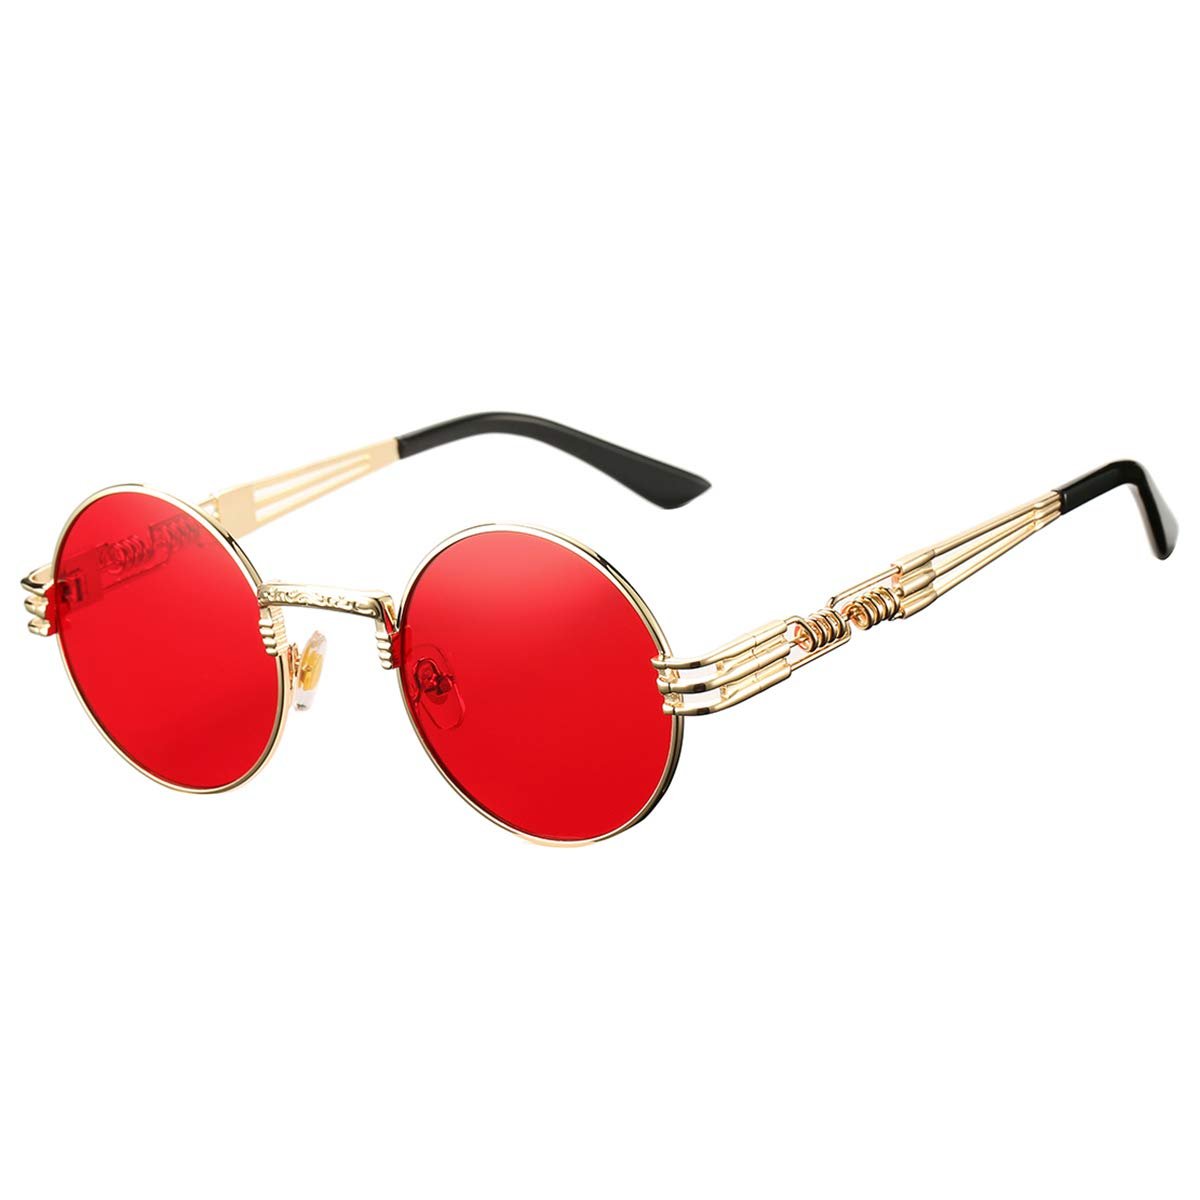 DeBuff Retro Round Steampunk Sunglasses John Lennon Hippie Glasses (Gold Frame/Ocean Red Lens) by DeBuff